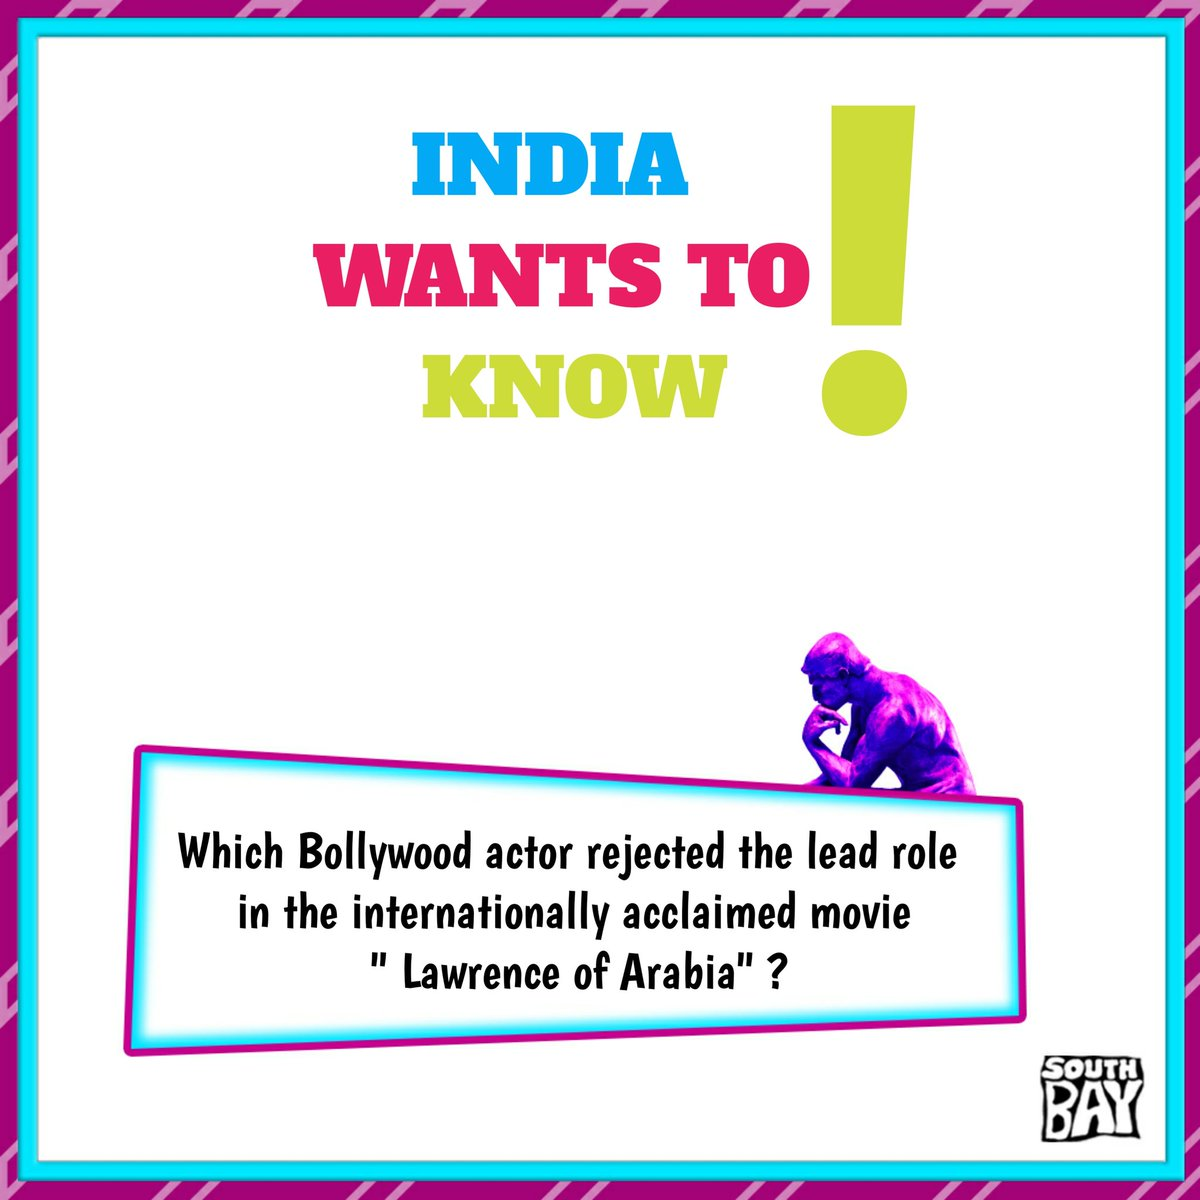 Your un-googled answers are most welcome! @IWTKQuiz #IndiaWantstoKnow #Southbay #Southbaylive